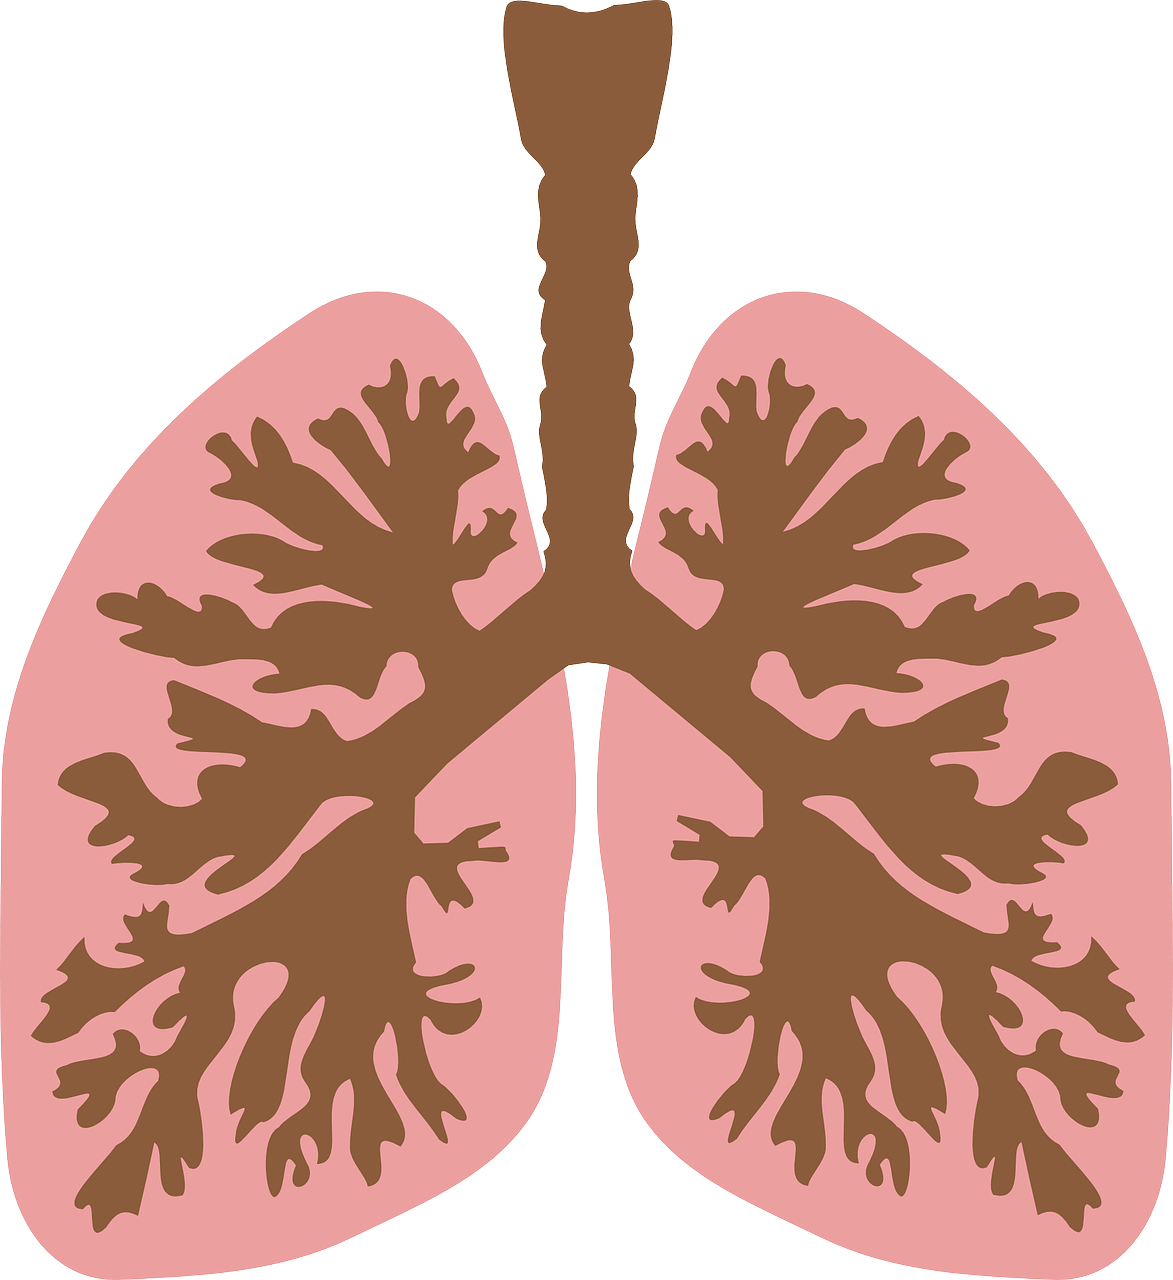 Lungs clipart pneumonia. Salient points to remember